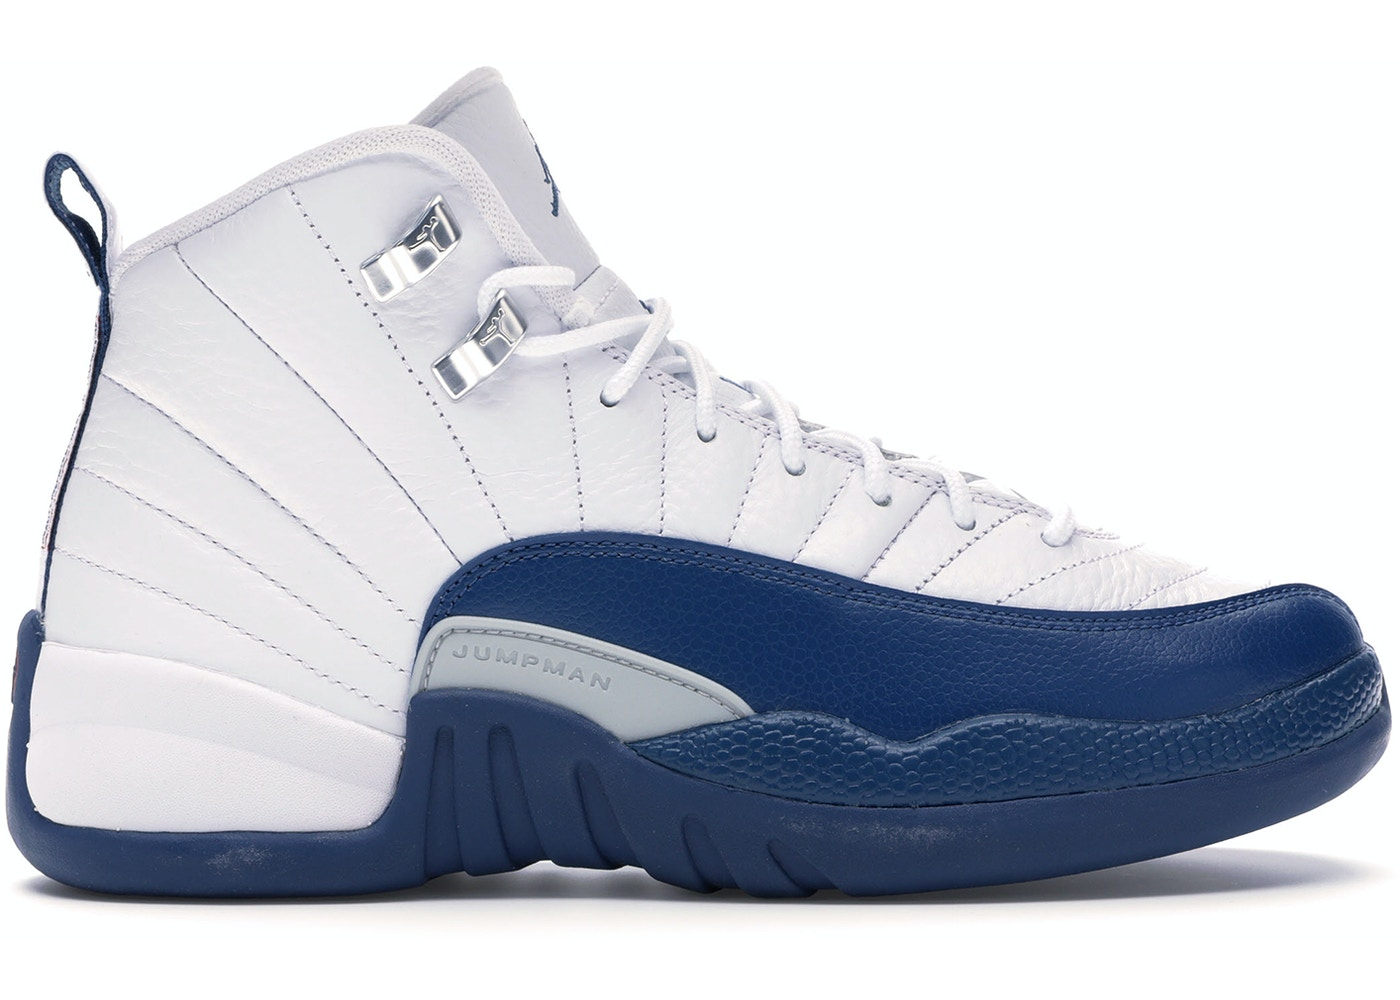 fc236768795 Buy Air Jordan 12 Shoes & Deadstock Sneakers